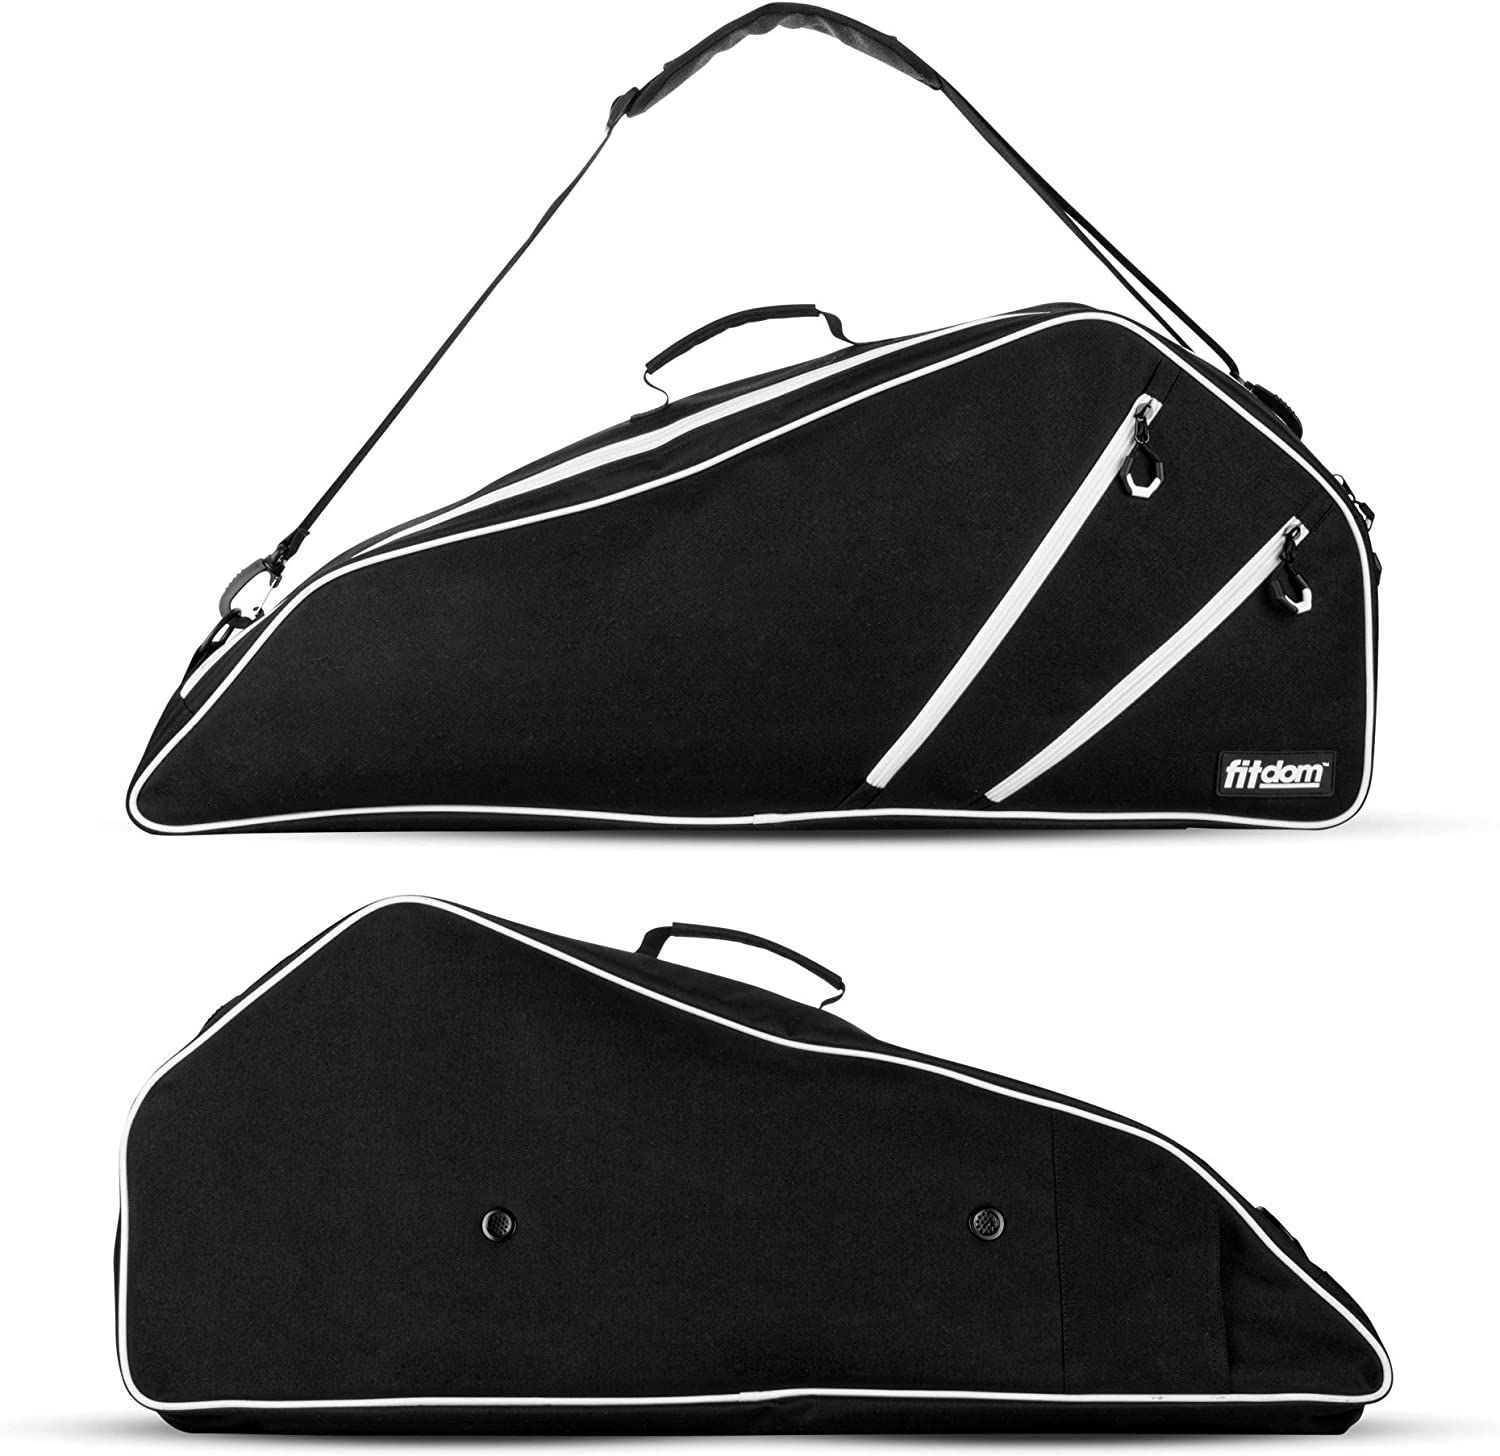 Fitdom Black Tennis Racket Bag - Can Carry Popular Per Up Ranking TOP16 to 3 Racquets.